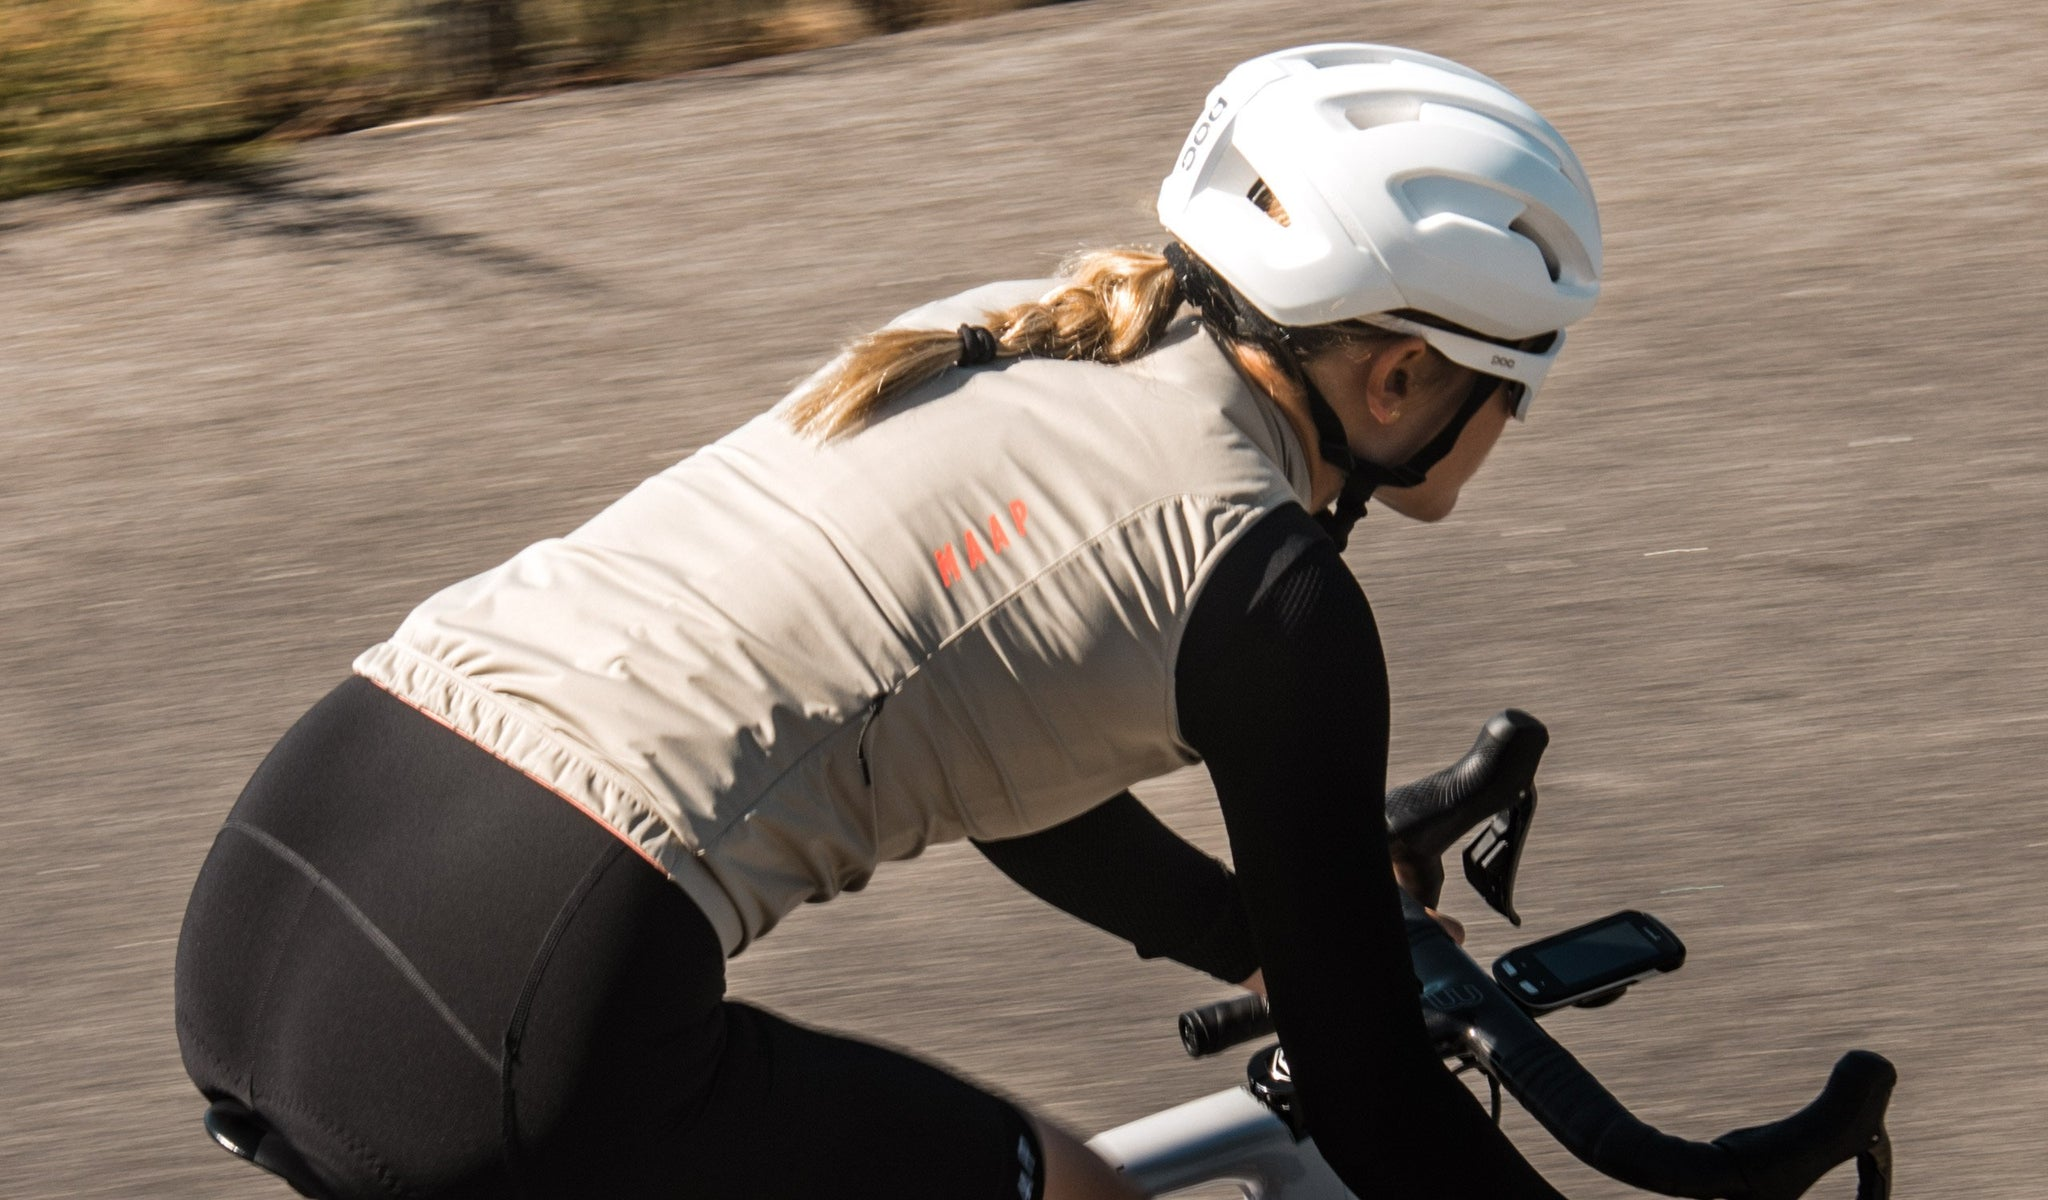 MAAP Women's Unite Team Cycling Vest in Gravel for riding in mild conditions.